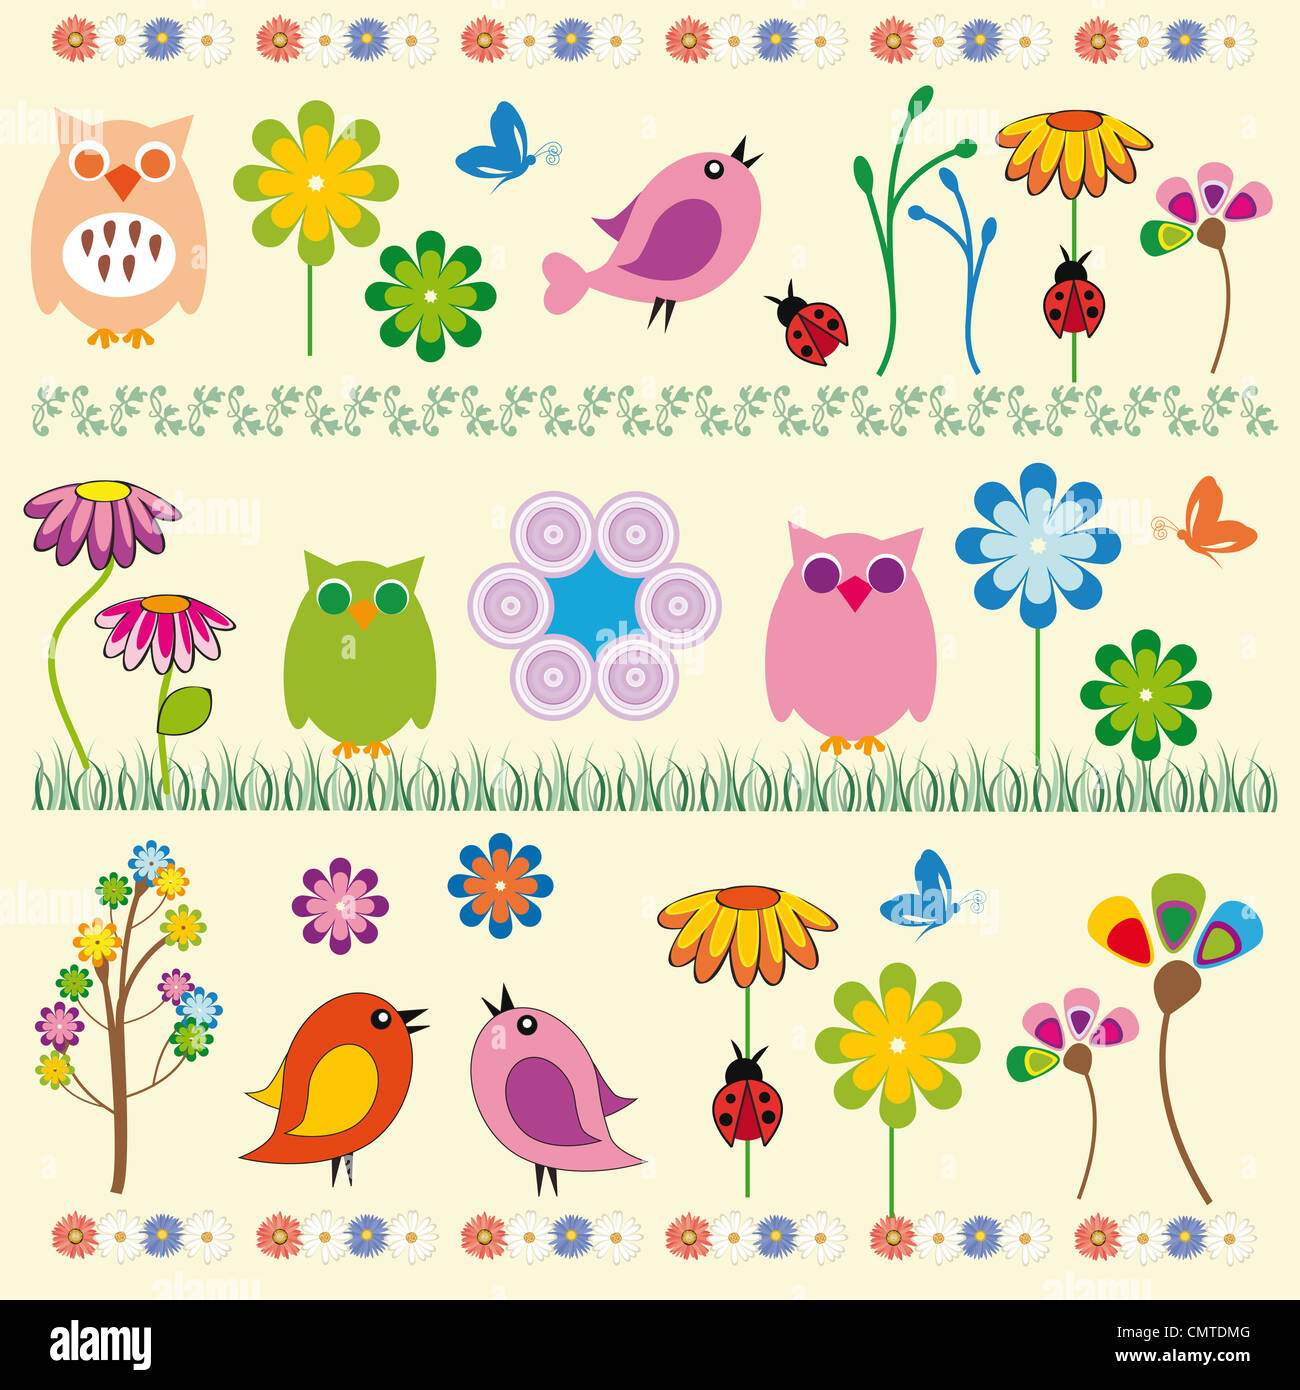 Cute kids background with flowers and birds - Stock Image